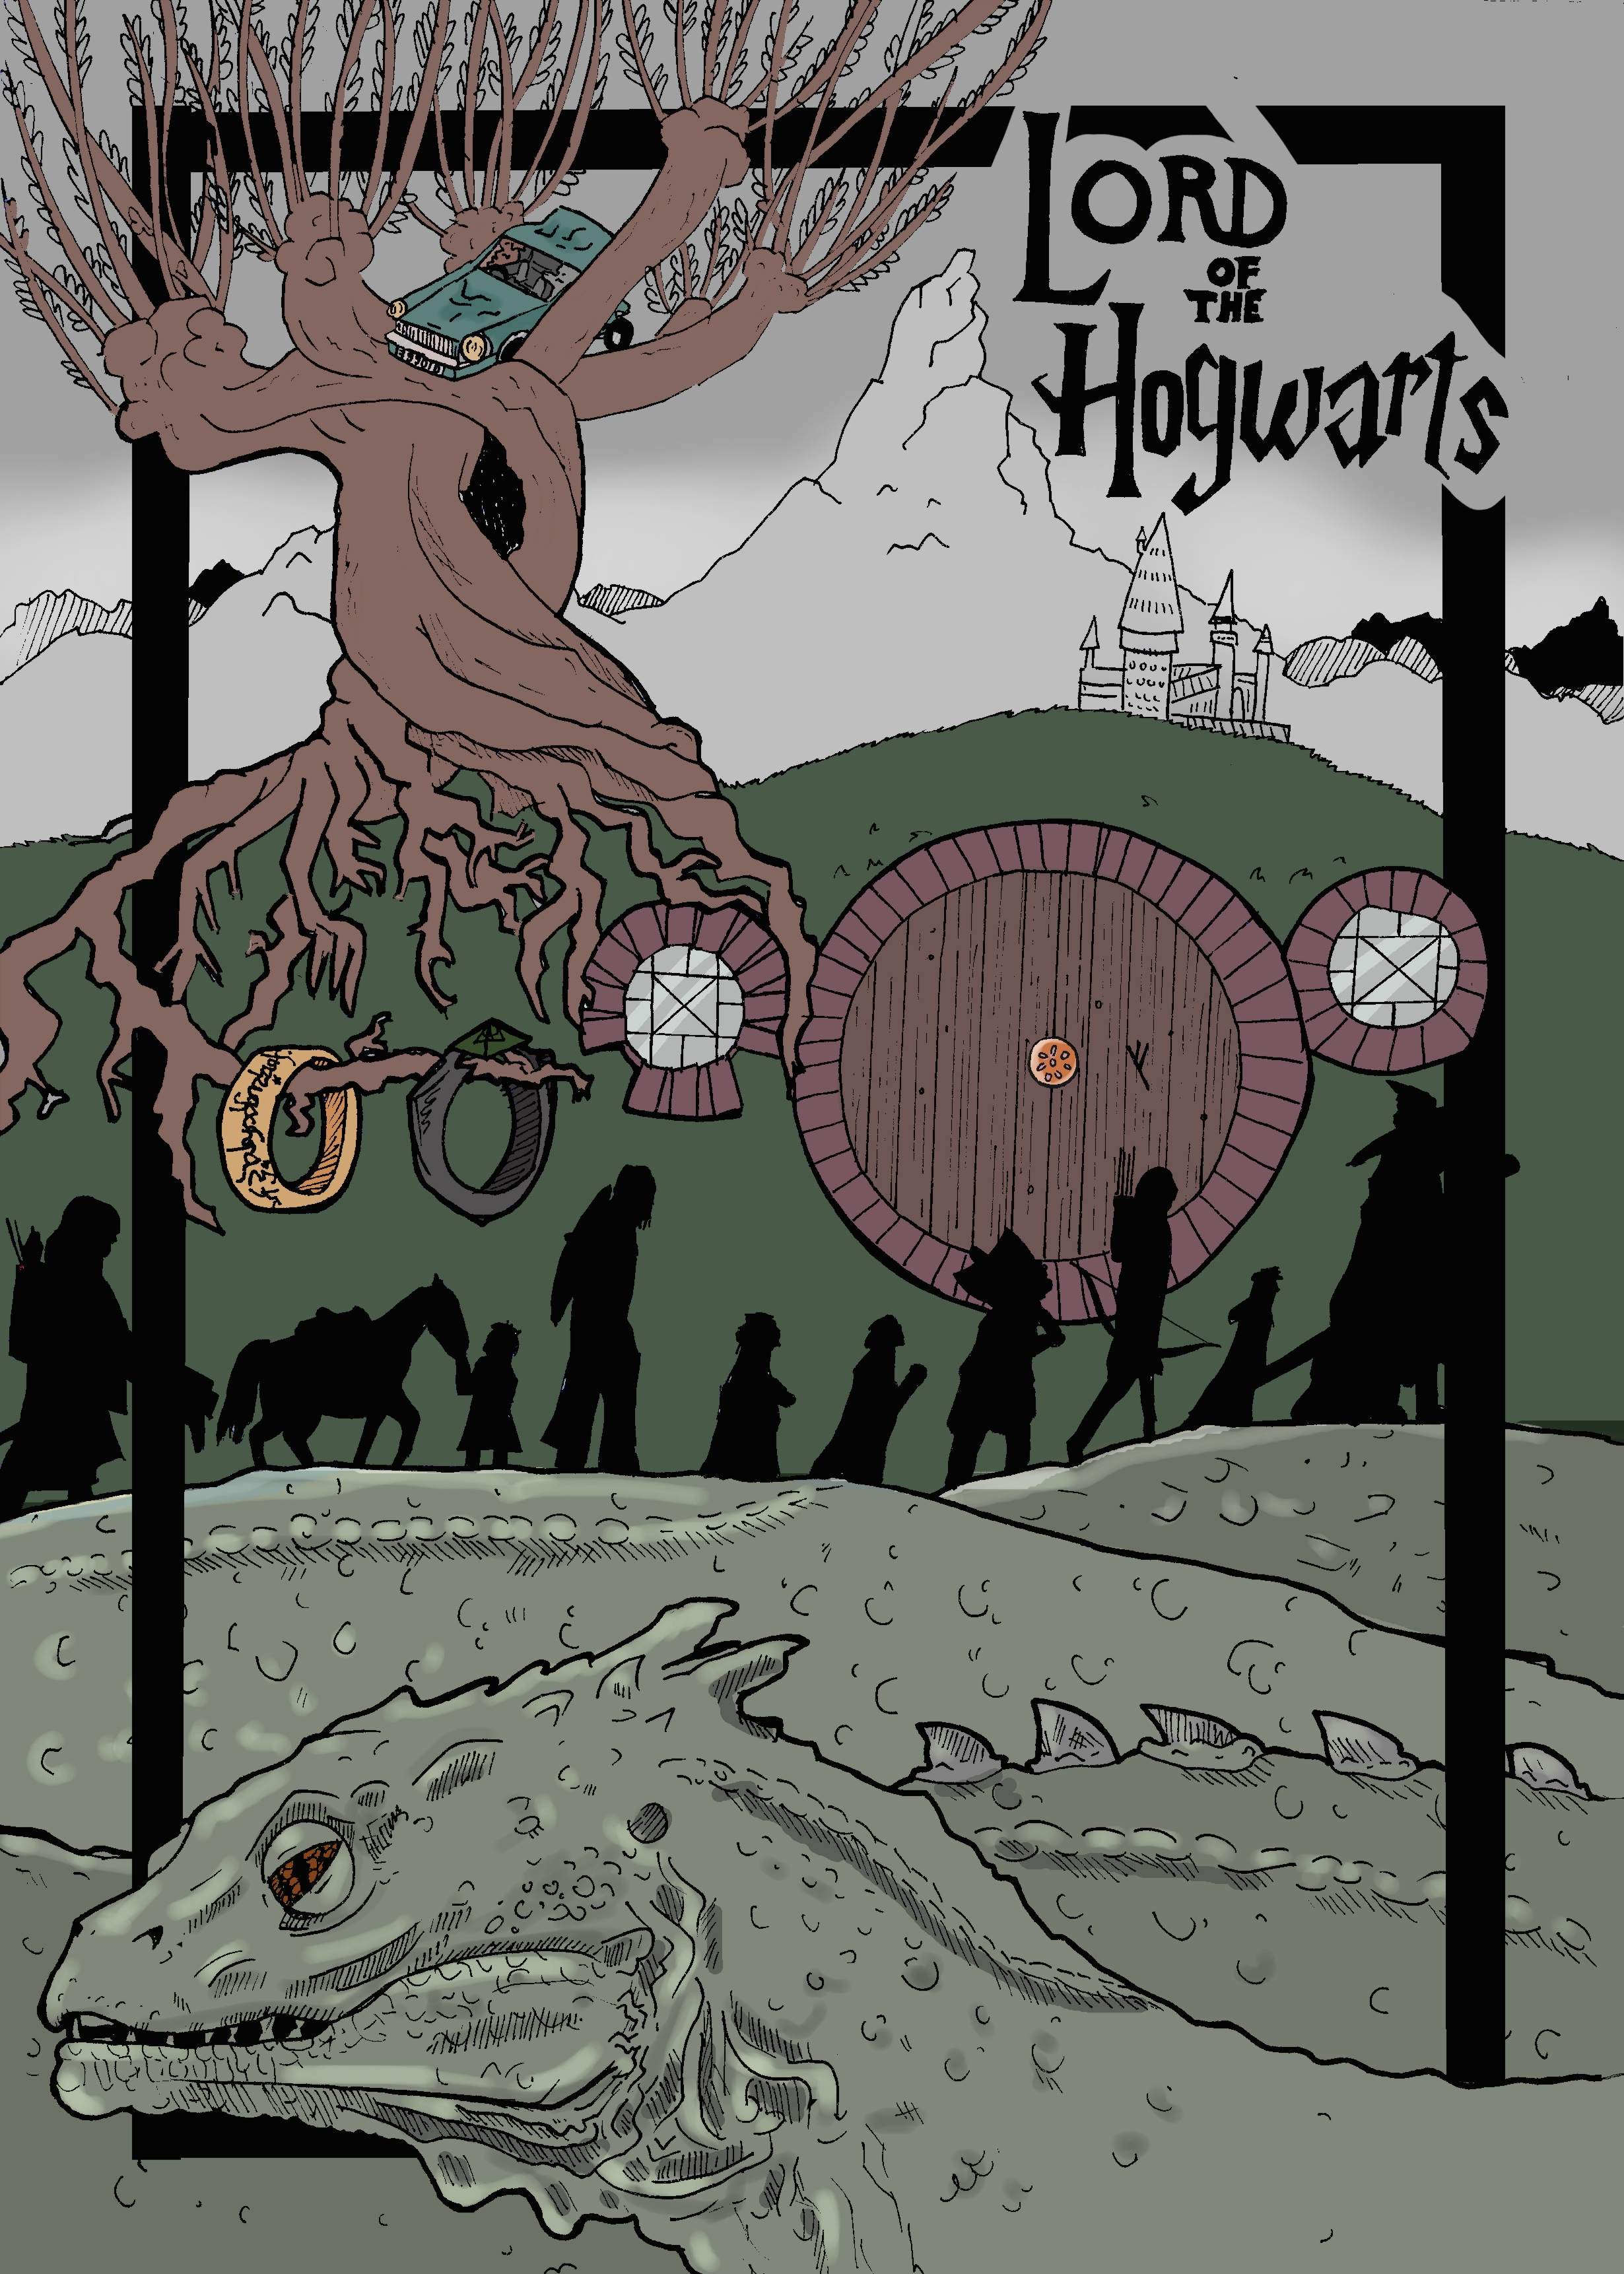 Lord of the Hogwarts poster